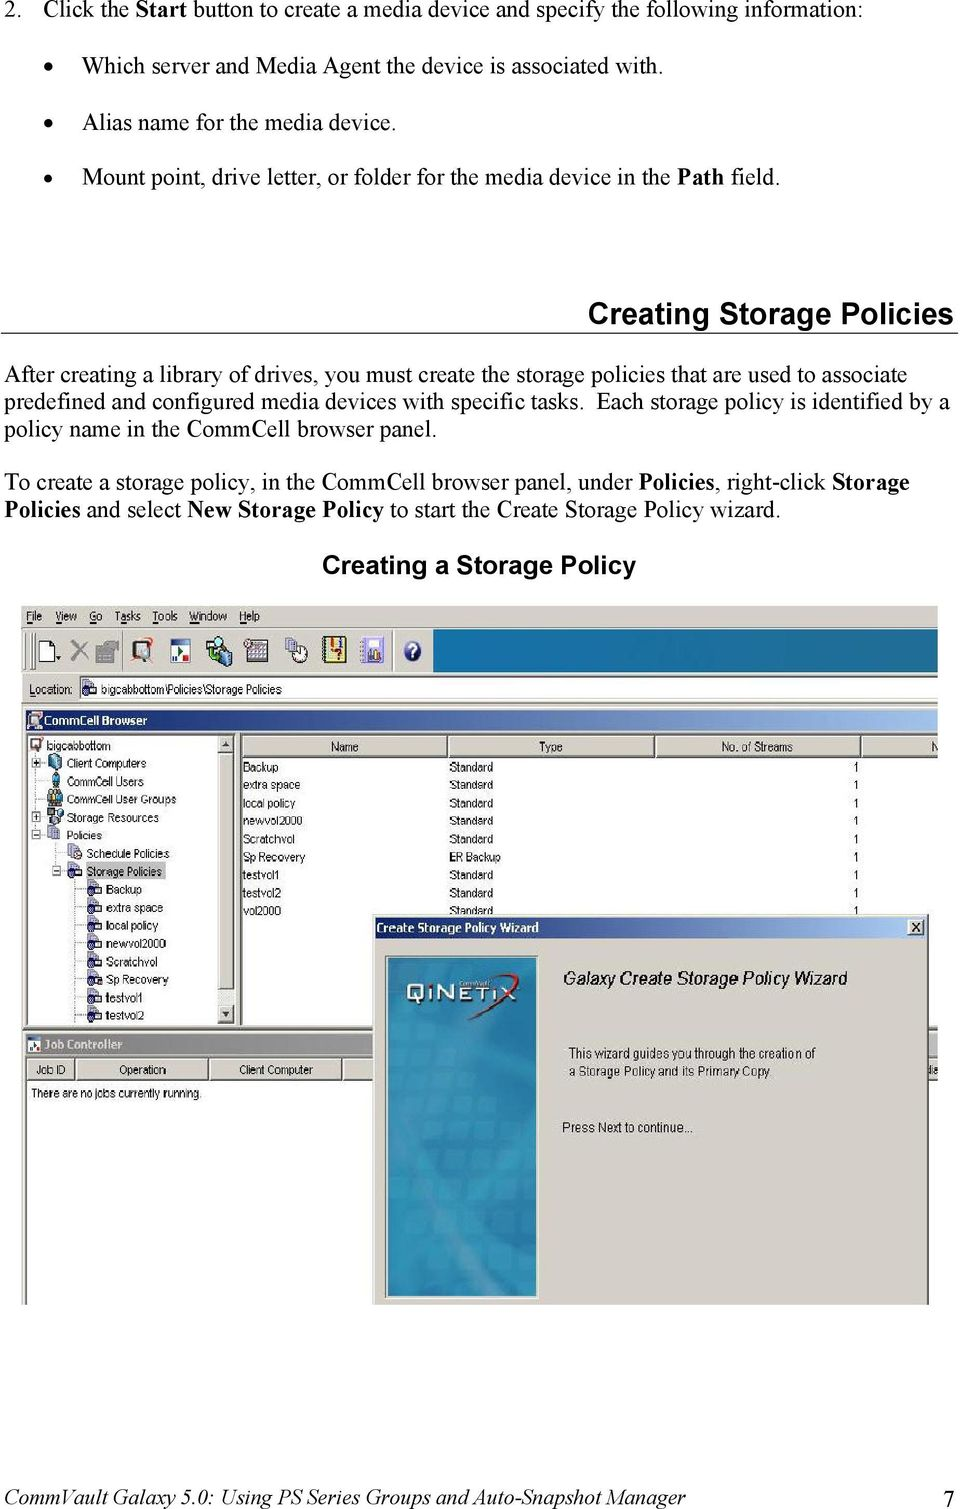 Creating Storage Policies After creating a library of drives, you must create the storage policies that are used to associate predefined and configured media devices with specific tasks.